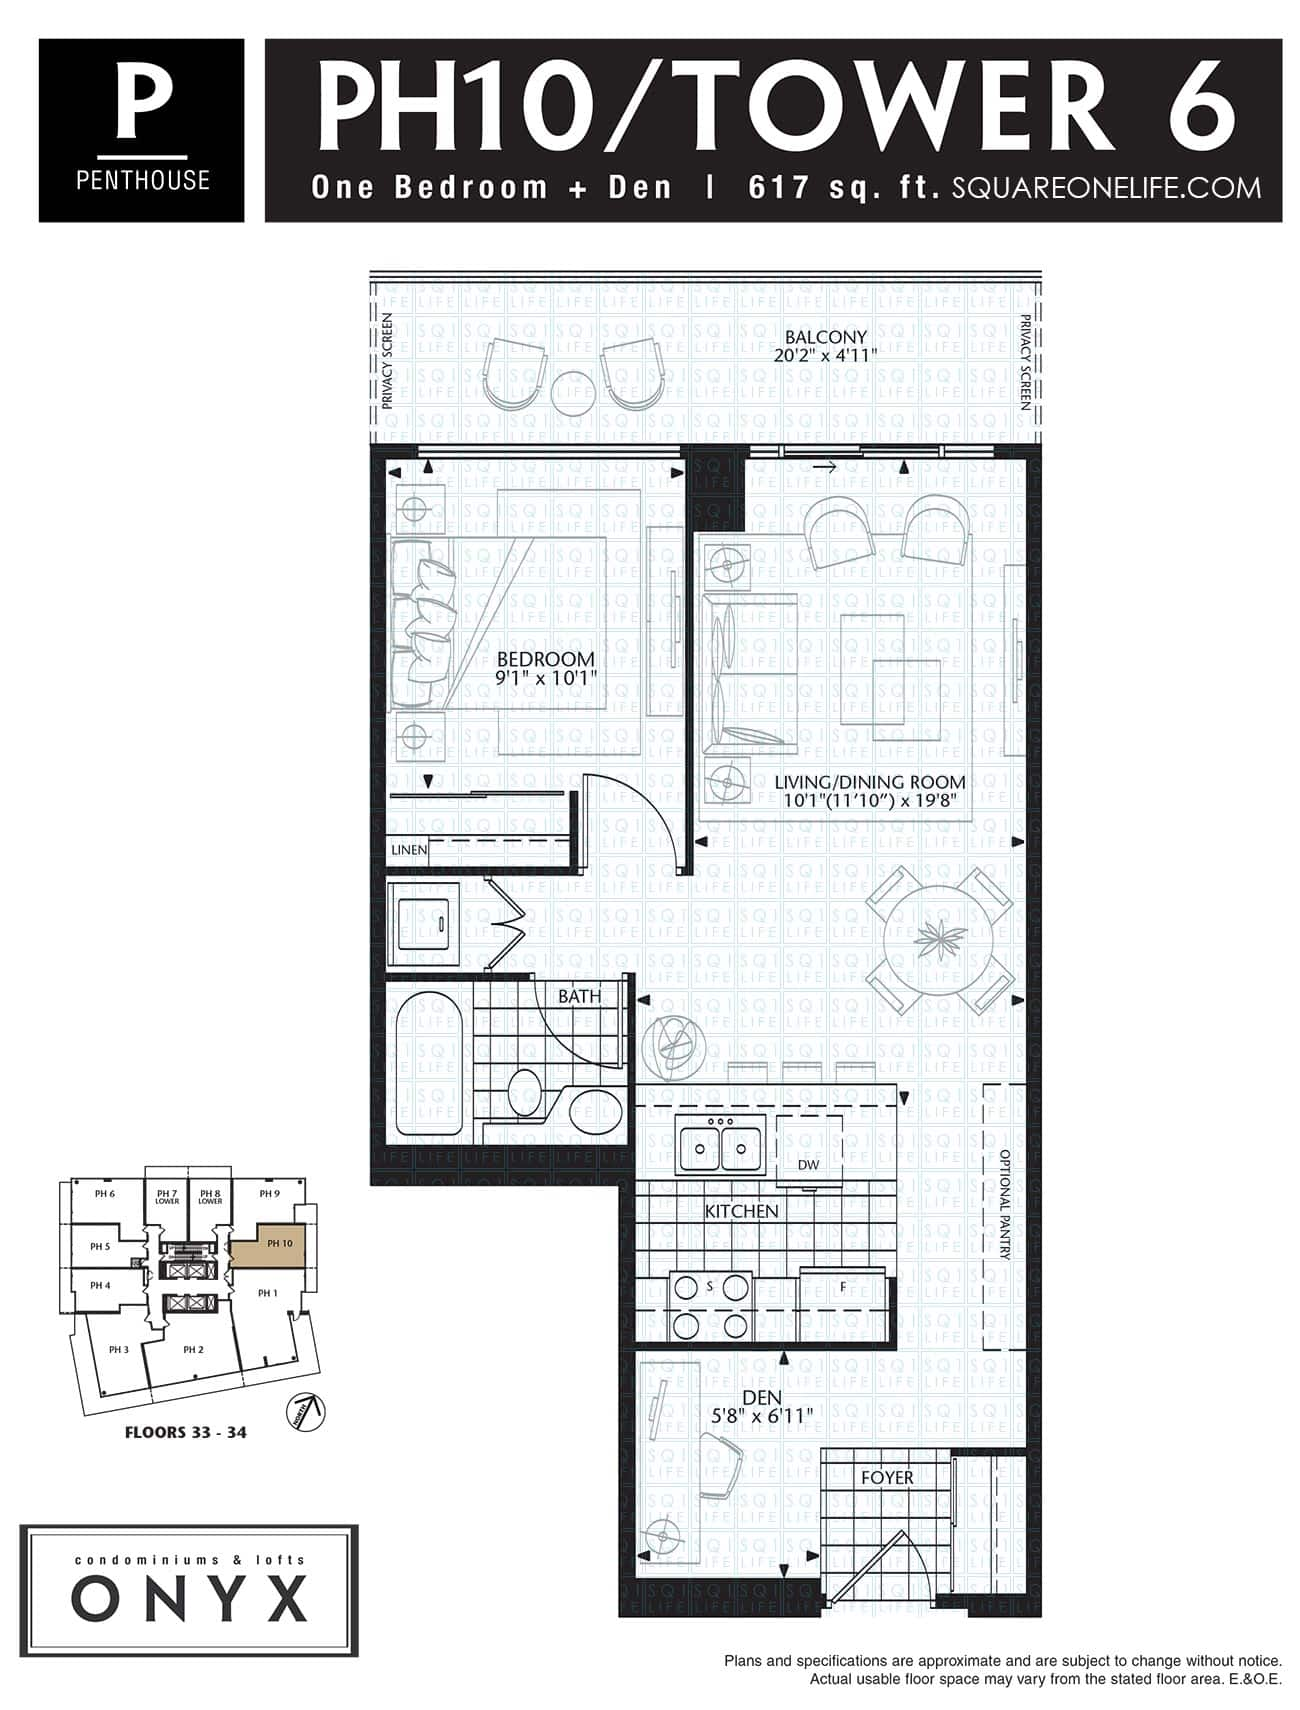 223-Webb-Dr-Onyx-Condo-Floorplan-PH10-1-Bed-1-Den onyx condo Onyx Condo 223 Webb Dr Onyx Condo Floorplan PH10 1 Bed 1 Den